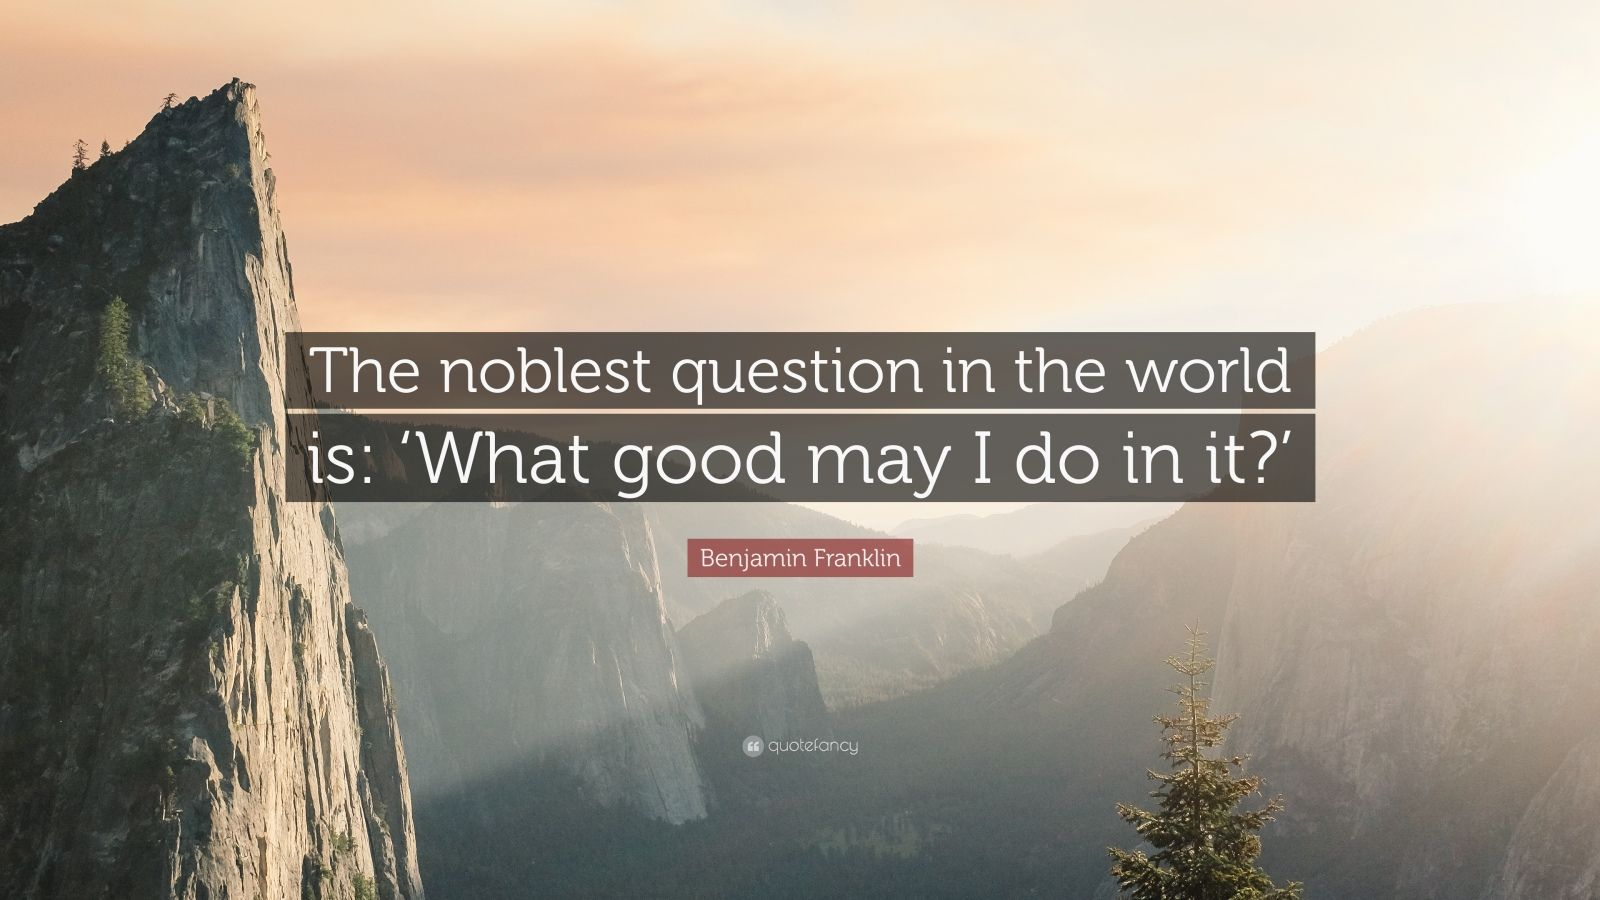 """Benjamin Franklin Quote: """"The noblest question in the world is: 'What good may I do in it?'"""""""